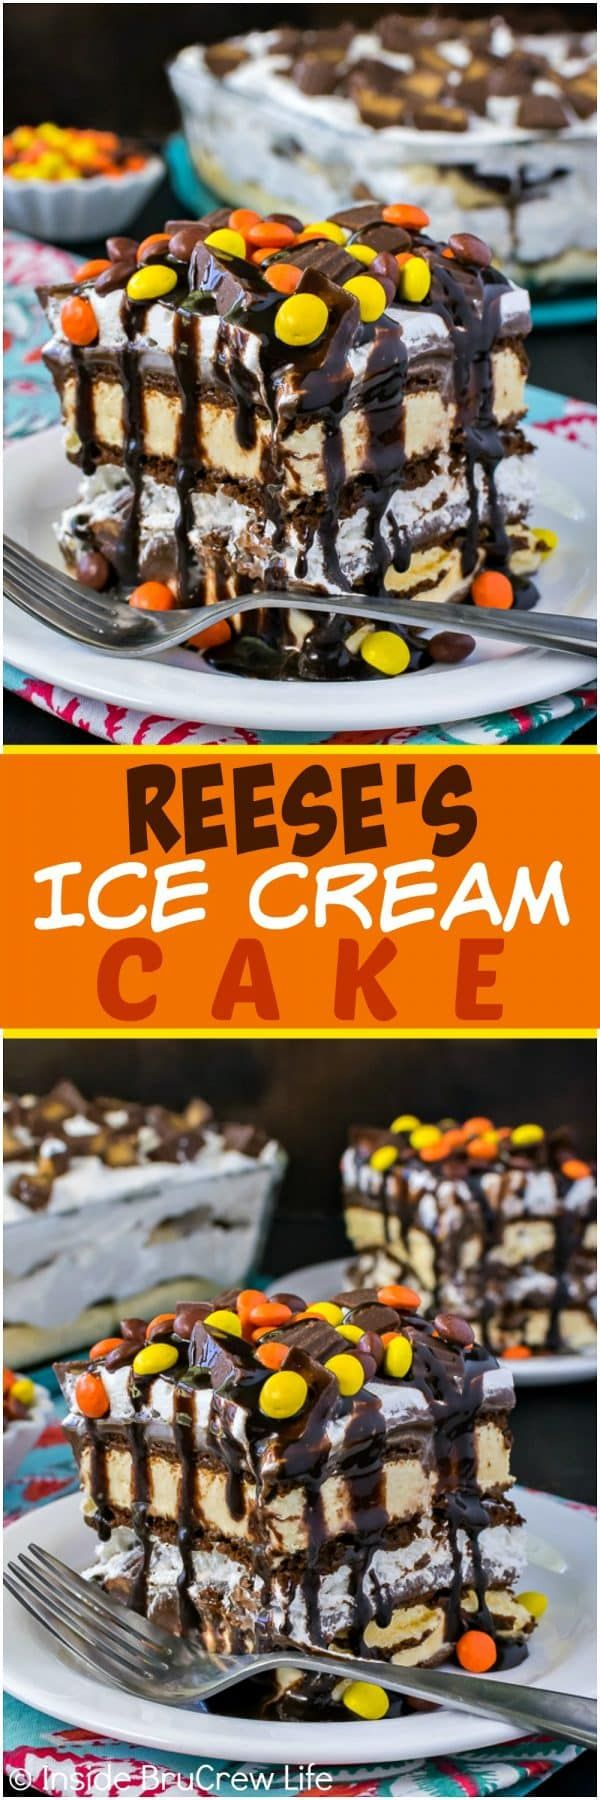 Reese's Ice Cream Cake - lots of candy and fudge transform ice cream sandwiches into a gourmet ice cream cake!  Awesome and easy summer recipe for any party!